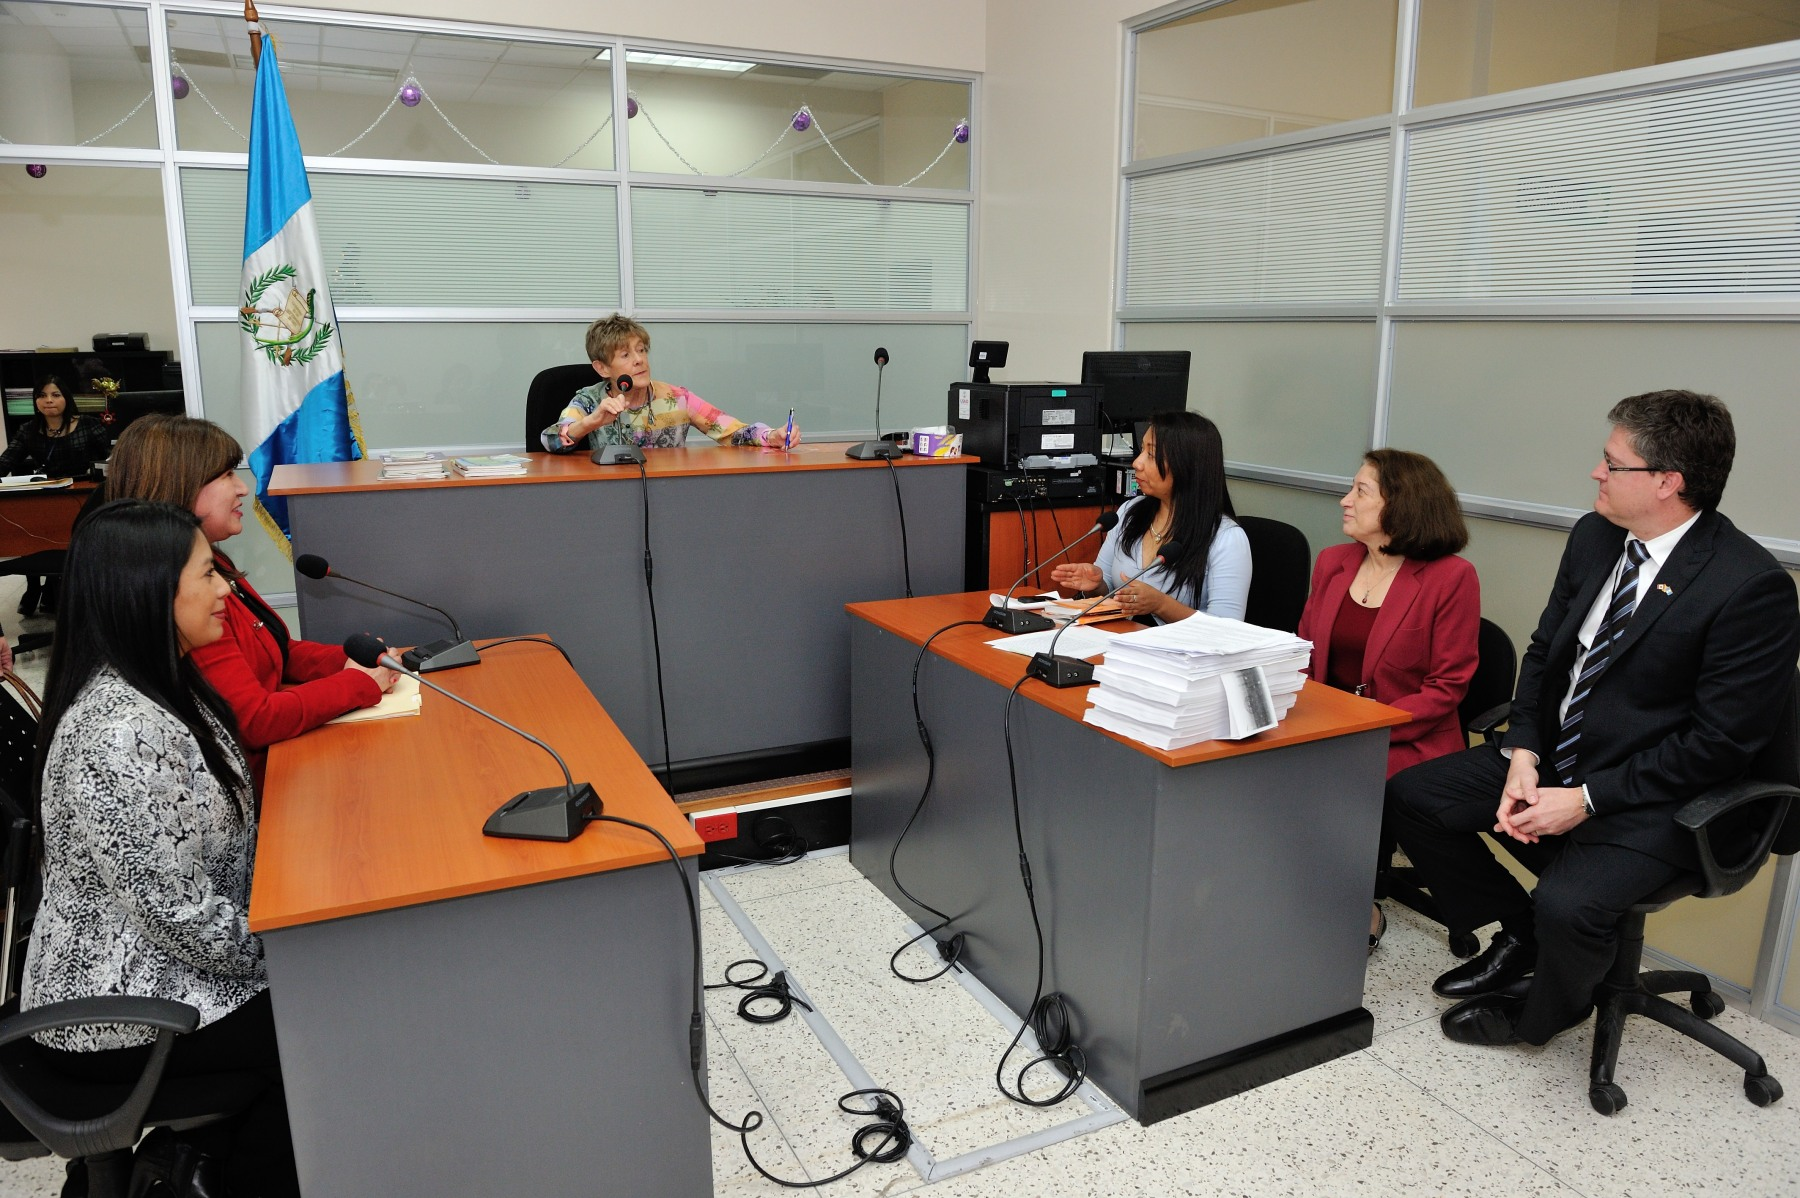 The purpose of the visit was also to underline the excellent work of the Ministry under the mandate of the current Attorney General, Claudia Paz y Paz.